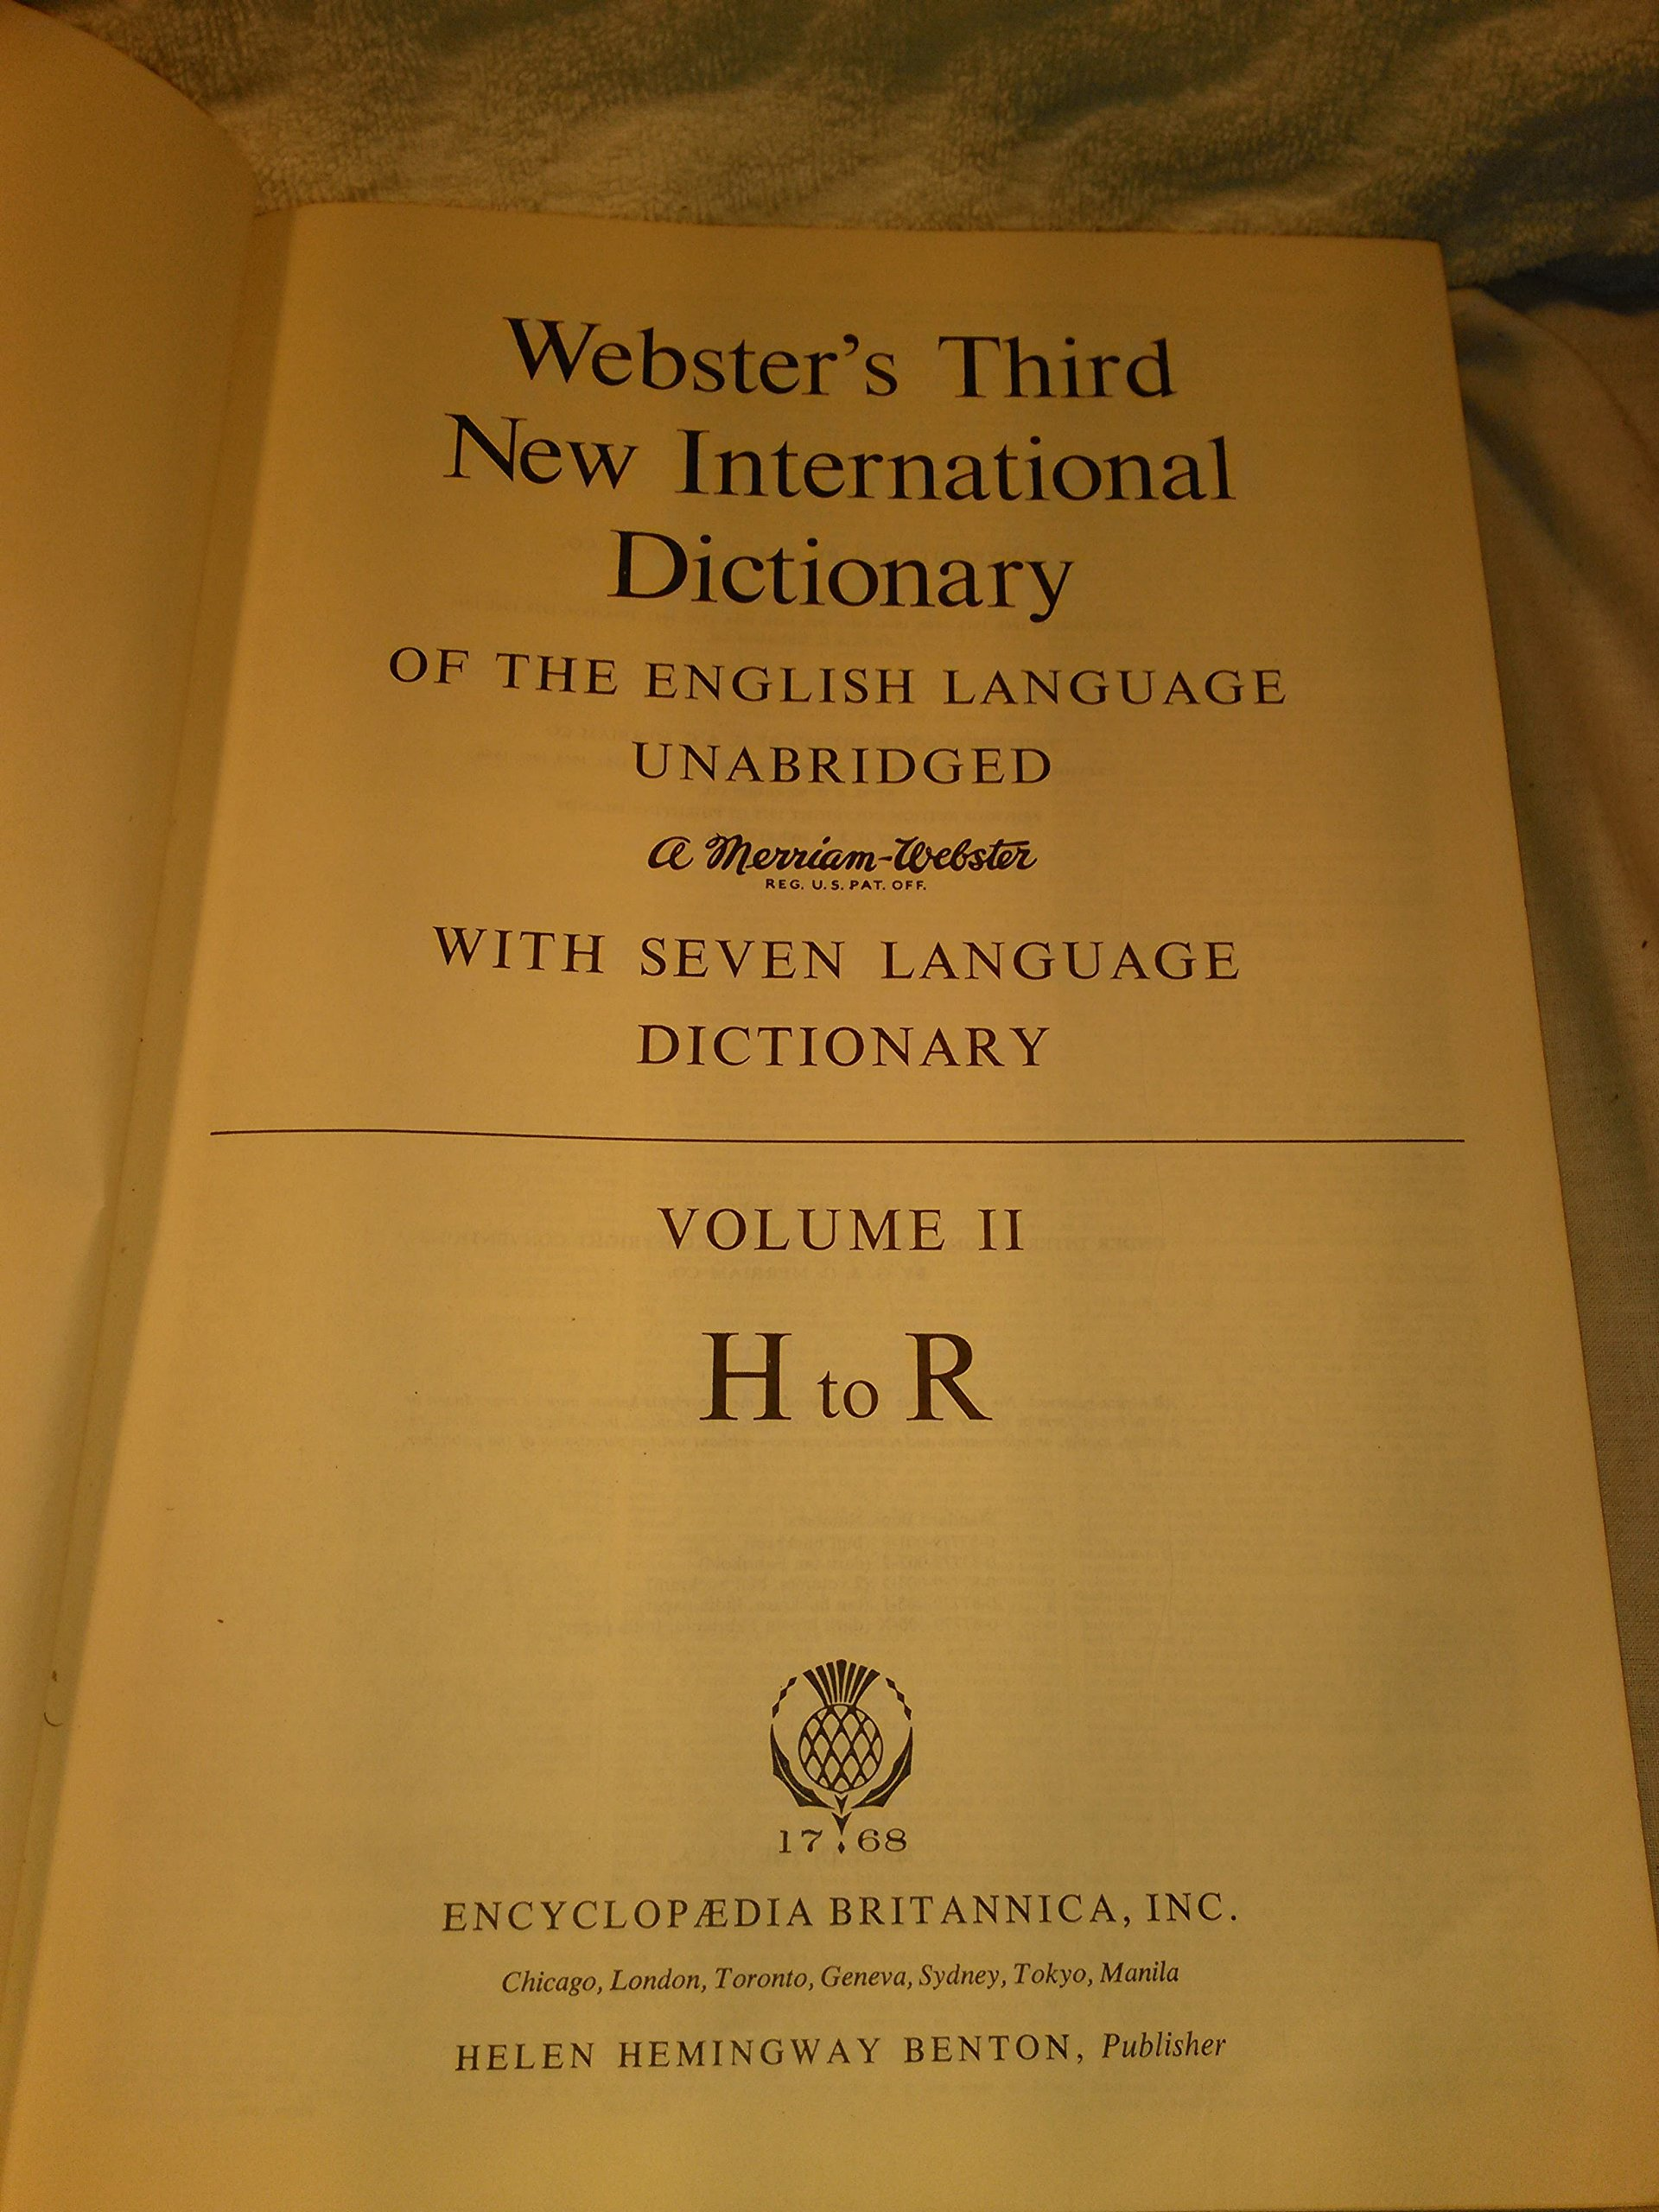 Webster's Third New International Dictionary and Seven language Volume 2:  G. and C. Merrian Co: 0795525751291: Amazon.com: Books